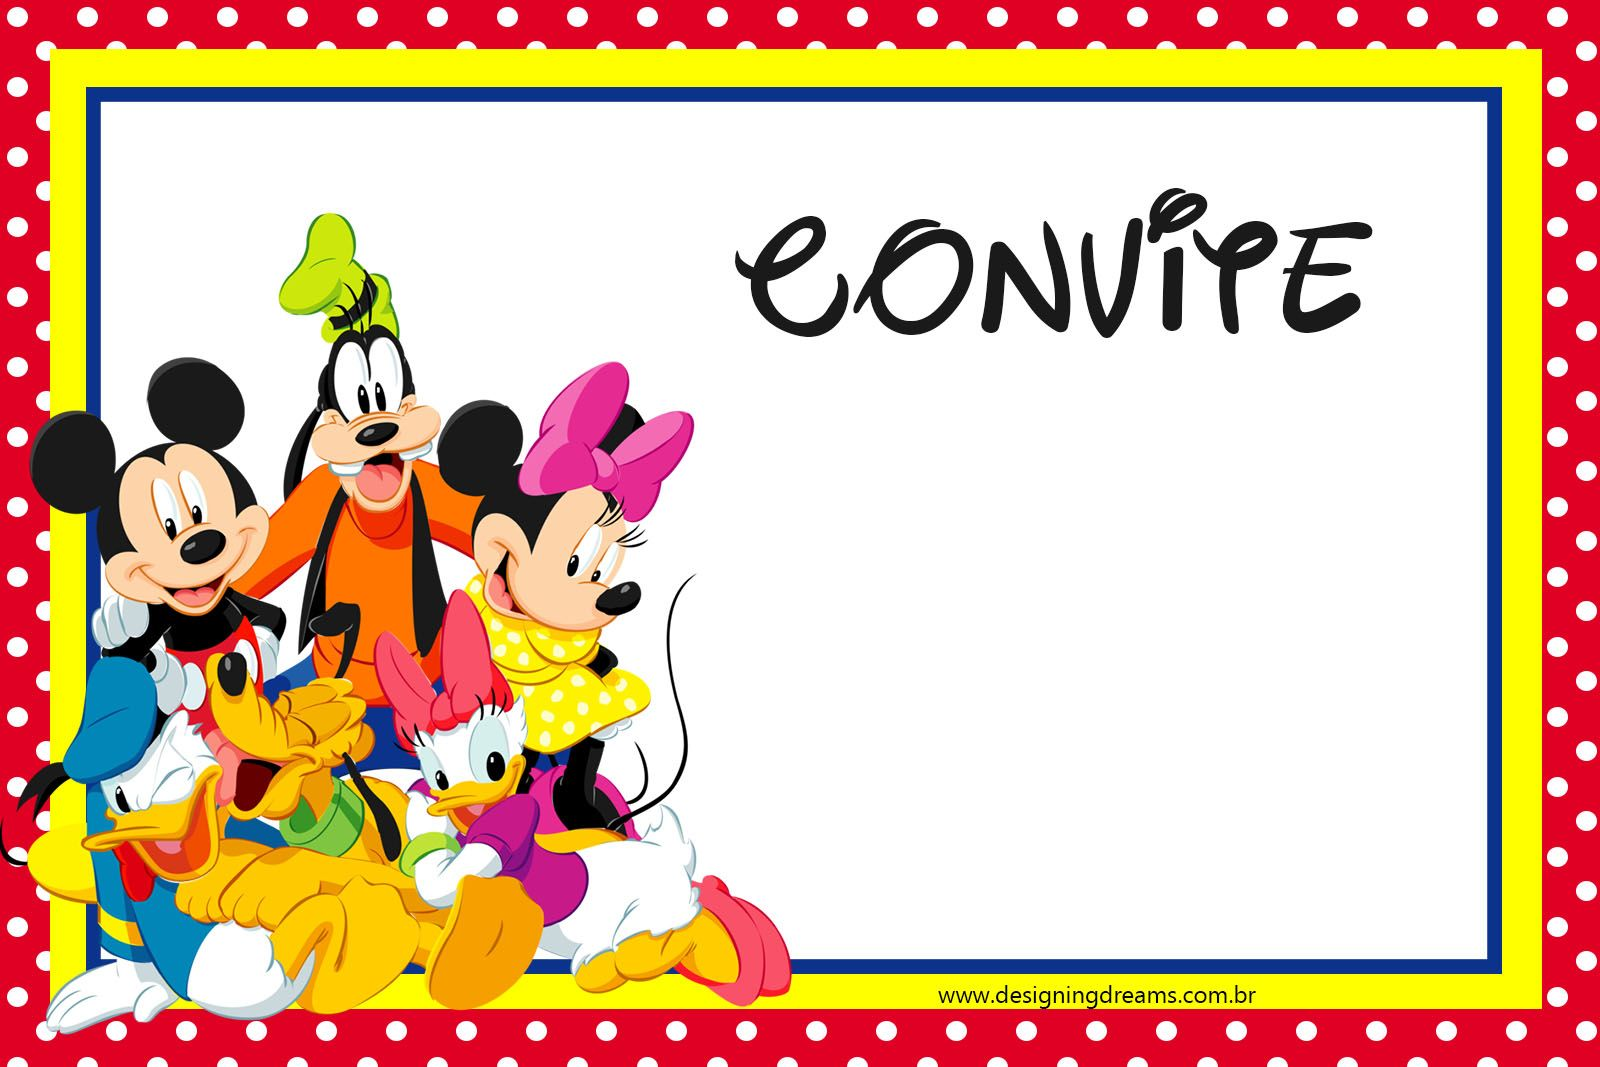 KIT FESTA PRONTA TURMA DO MICKEY GRÁTIS PARA BAIXAR | Layouts, Minnie mouse party and Mouse parties